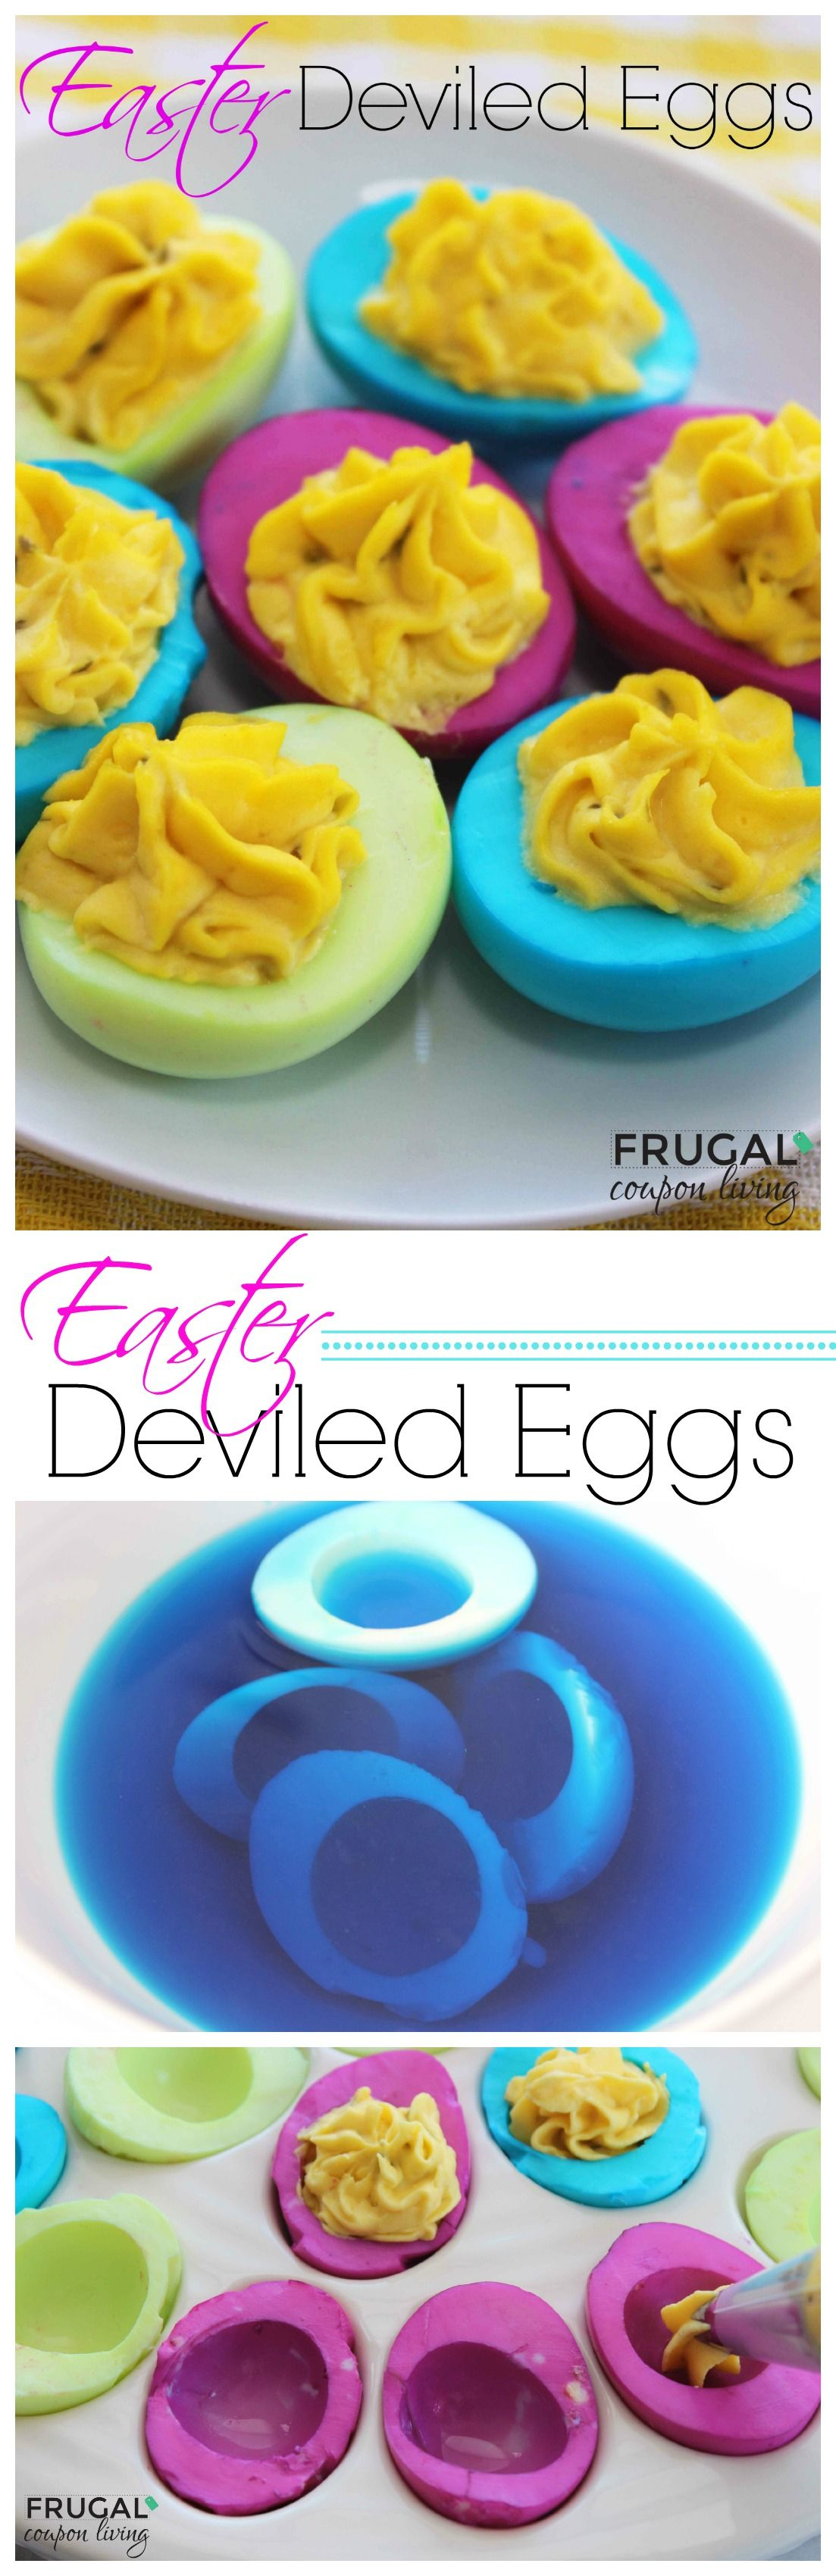 Easter deviled eggs tutorial on how to color the egg whites of easter deviled eggs tutorial on how to color the egg whites of your hard boiled eggs egg recipe idea on frugal coupon living forumfinder